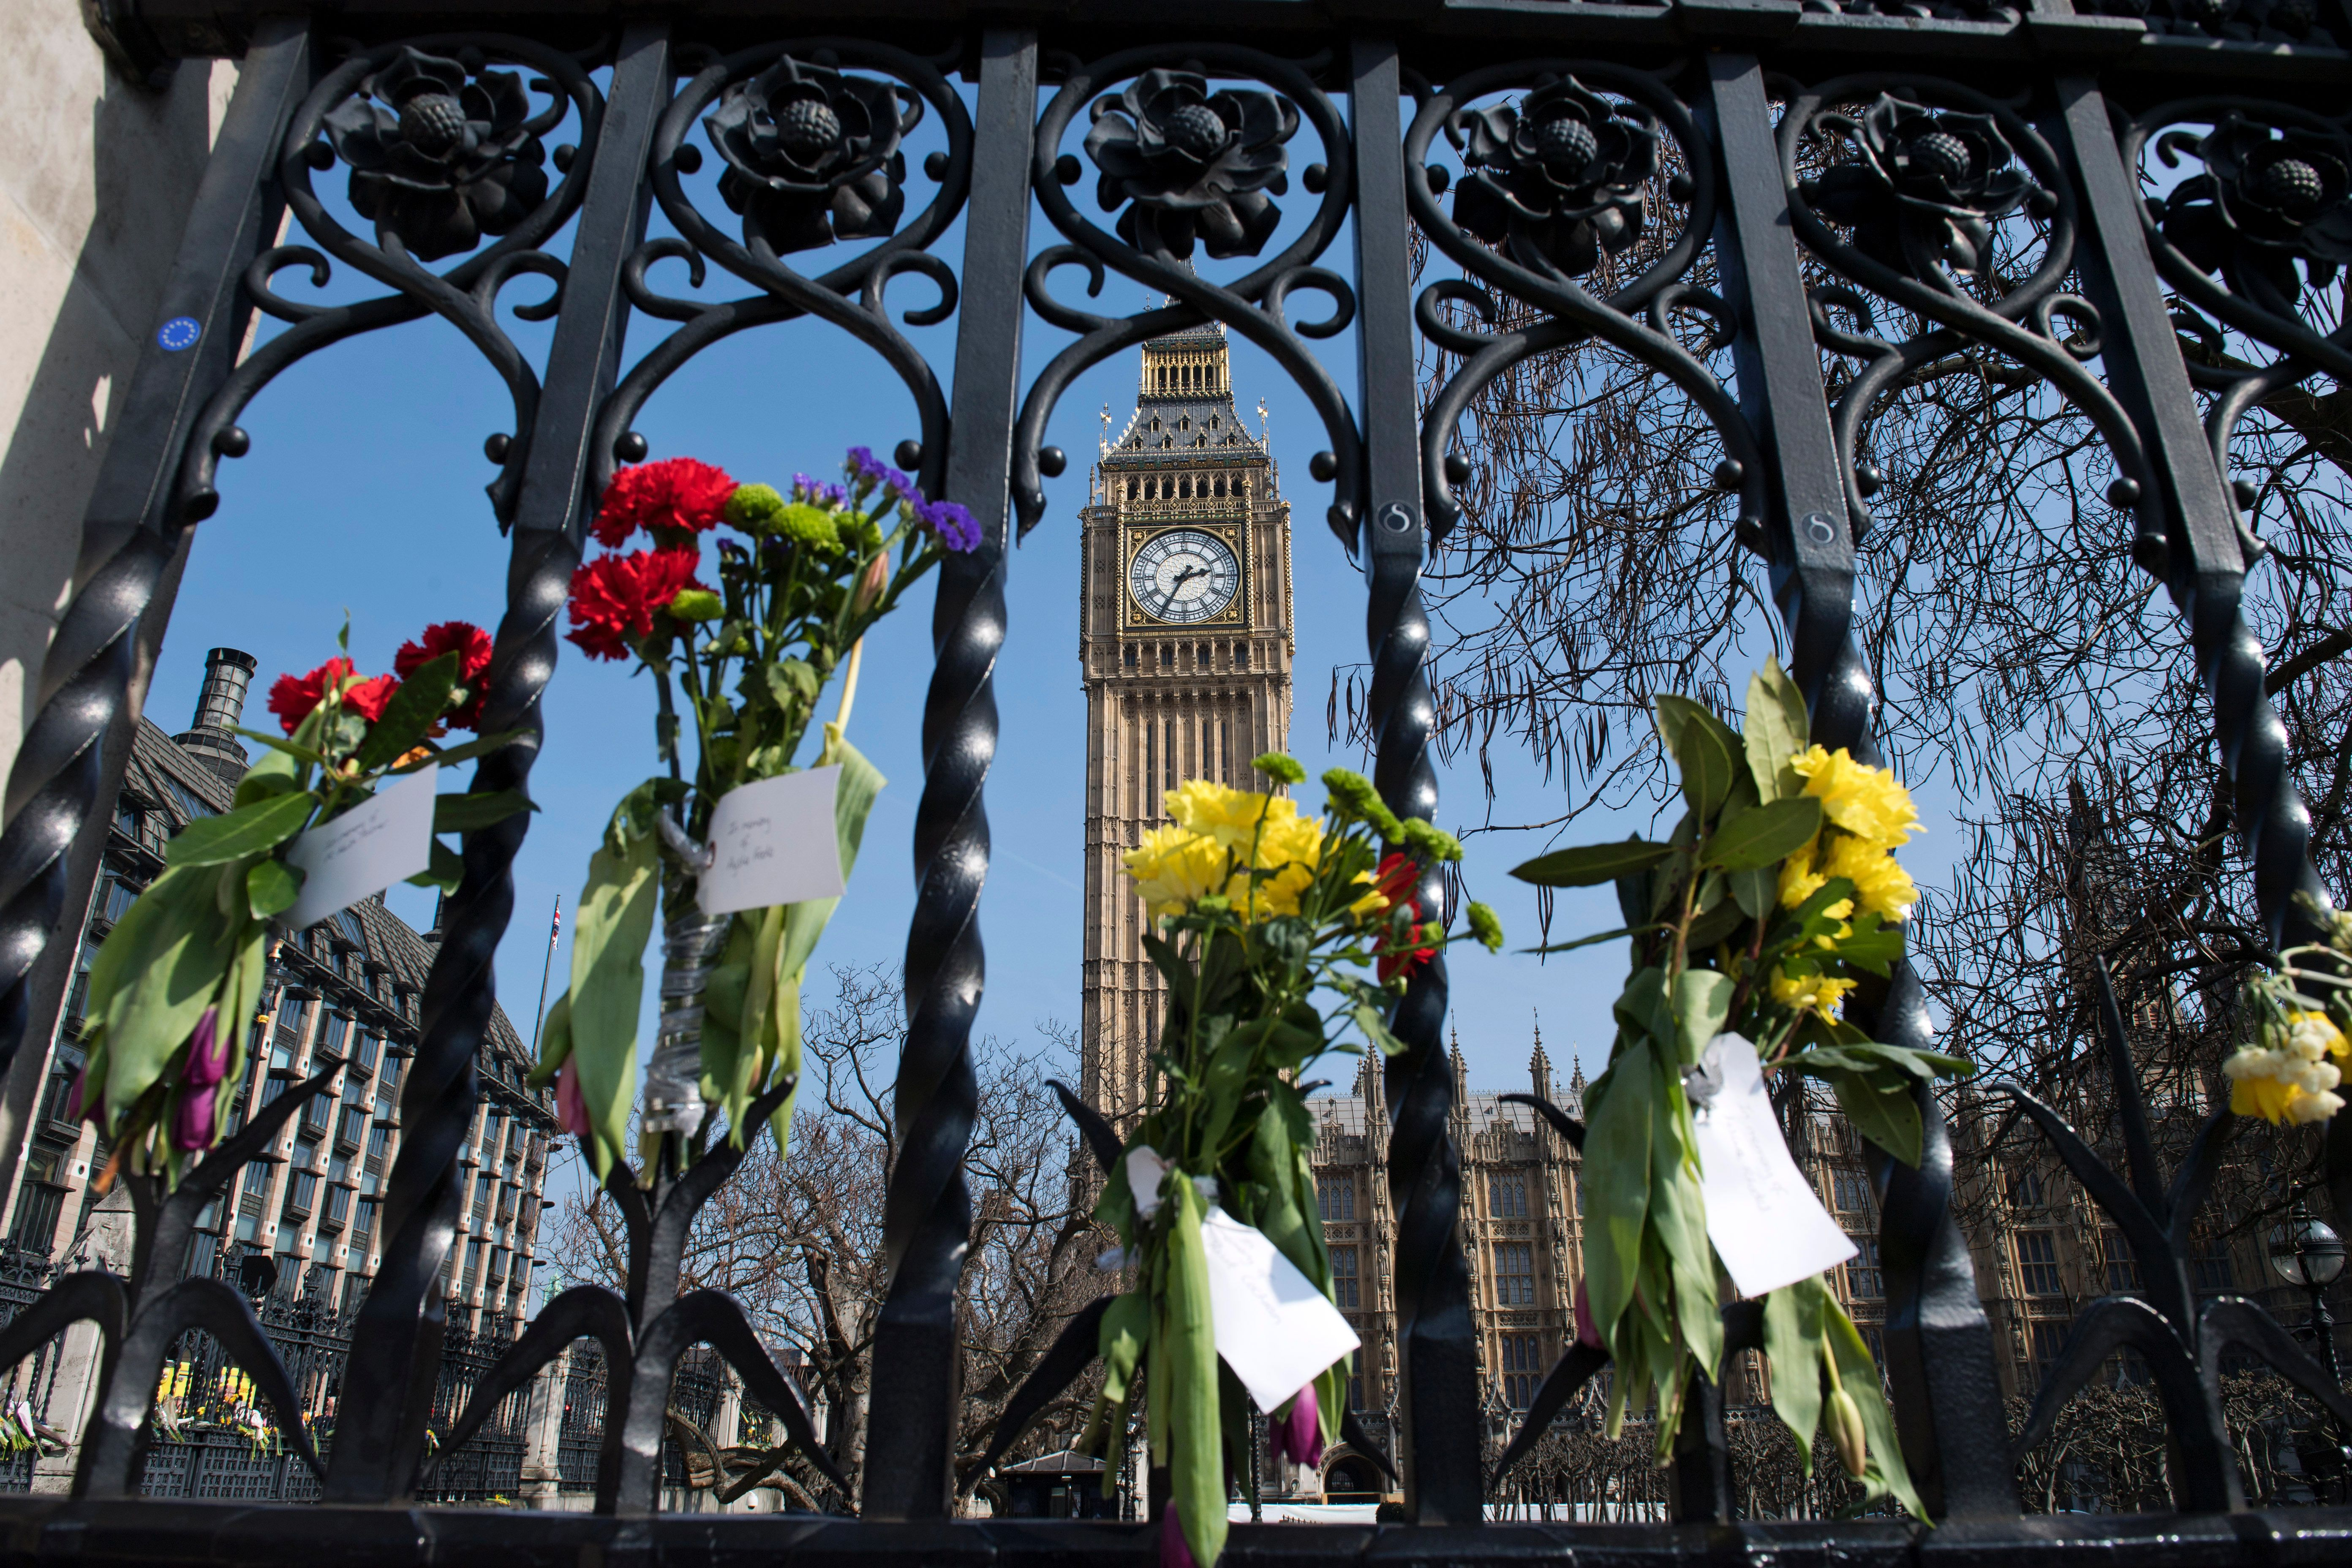 Floral tributes to the victims of the March 22 terror attack are seen on outside the Houses of Parliament in Westminster, central London, on March 27, 2017